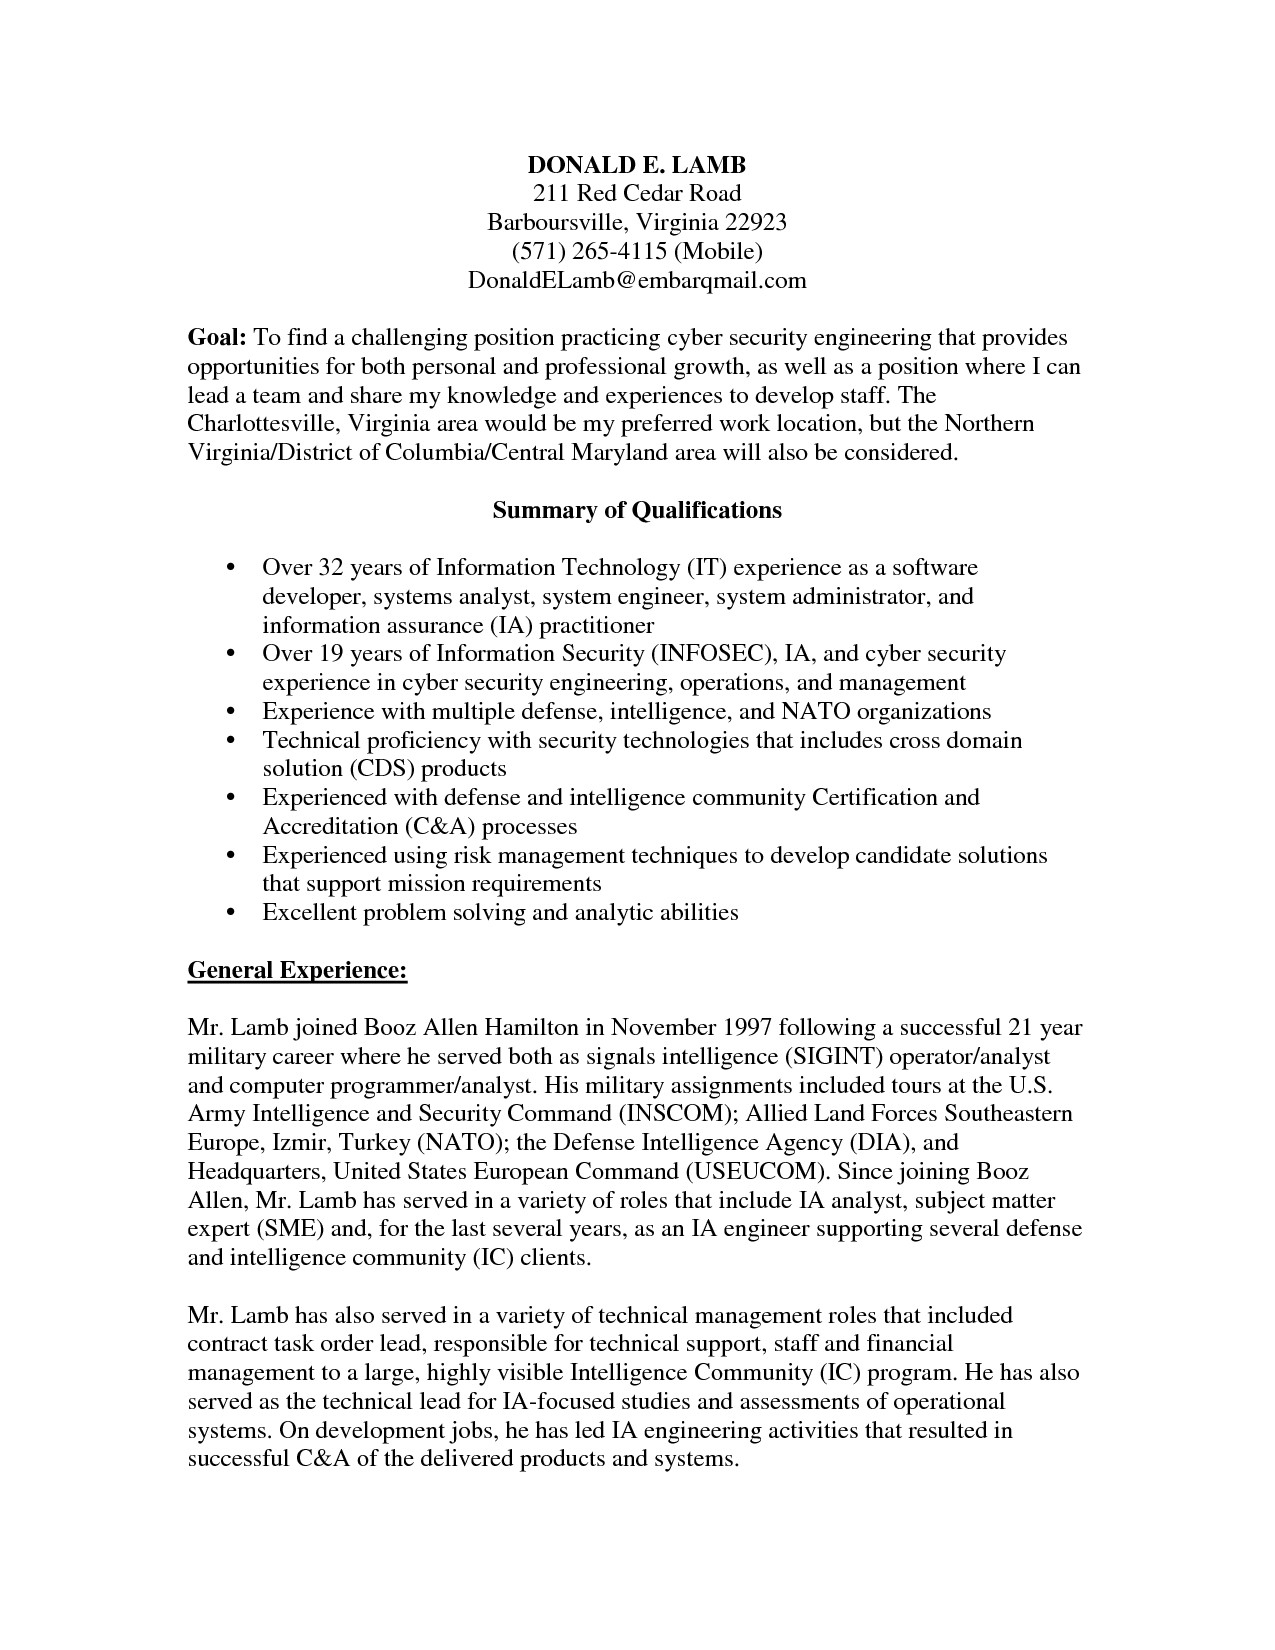 Information Security Analyst Resume - 16 Awesome Information Security Analyst Resume